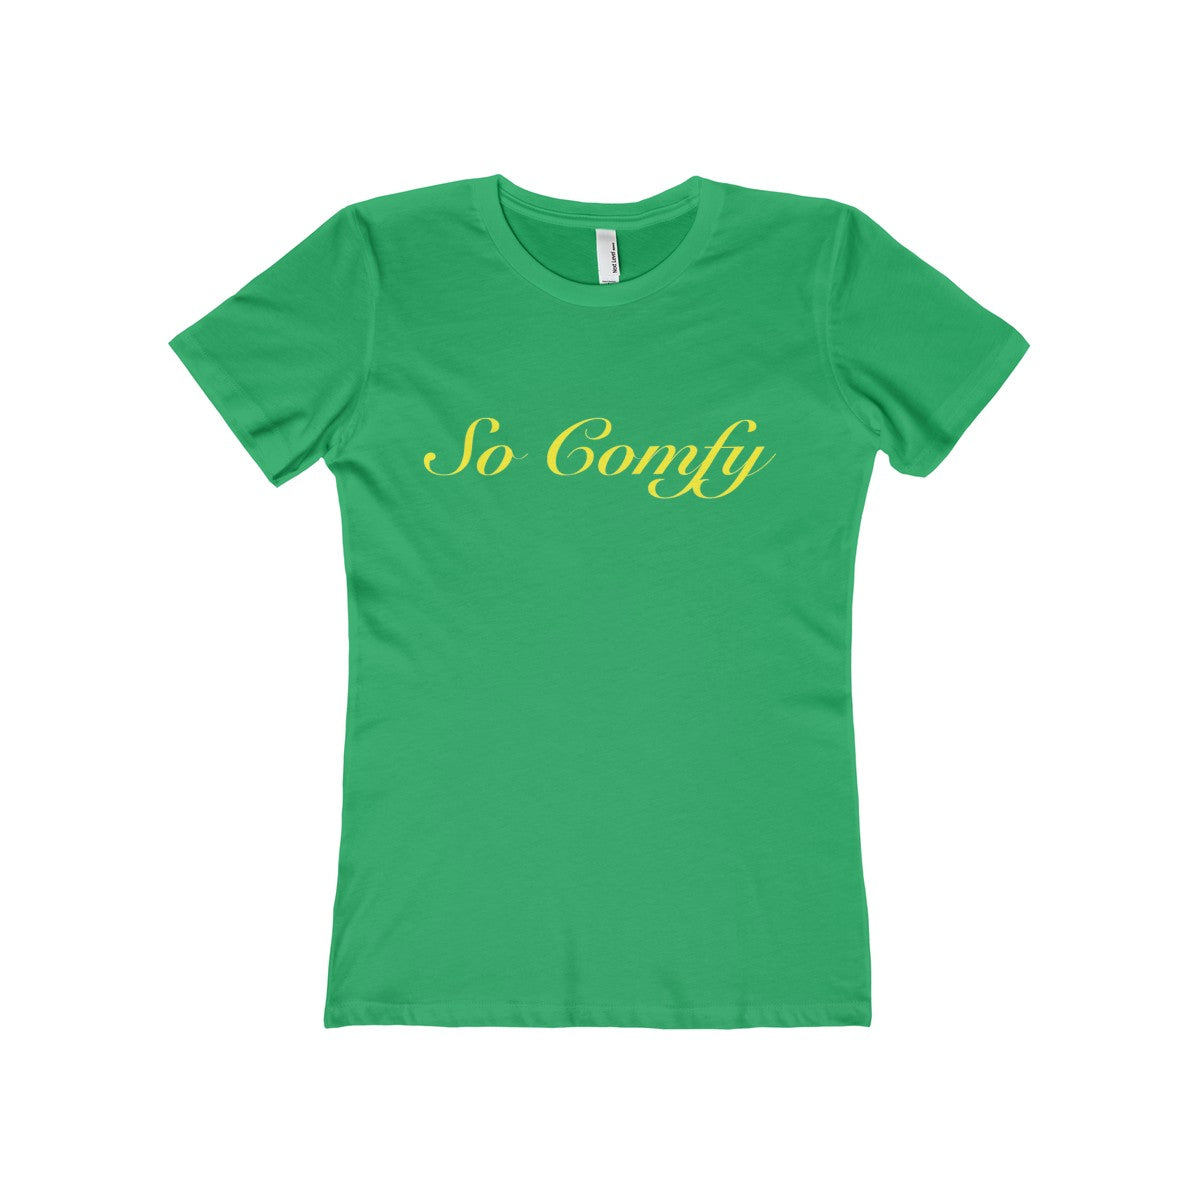 So Comfy Women's Trendy Crew Tee - The Comfort Crusade Shopping Lounge